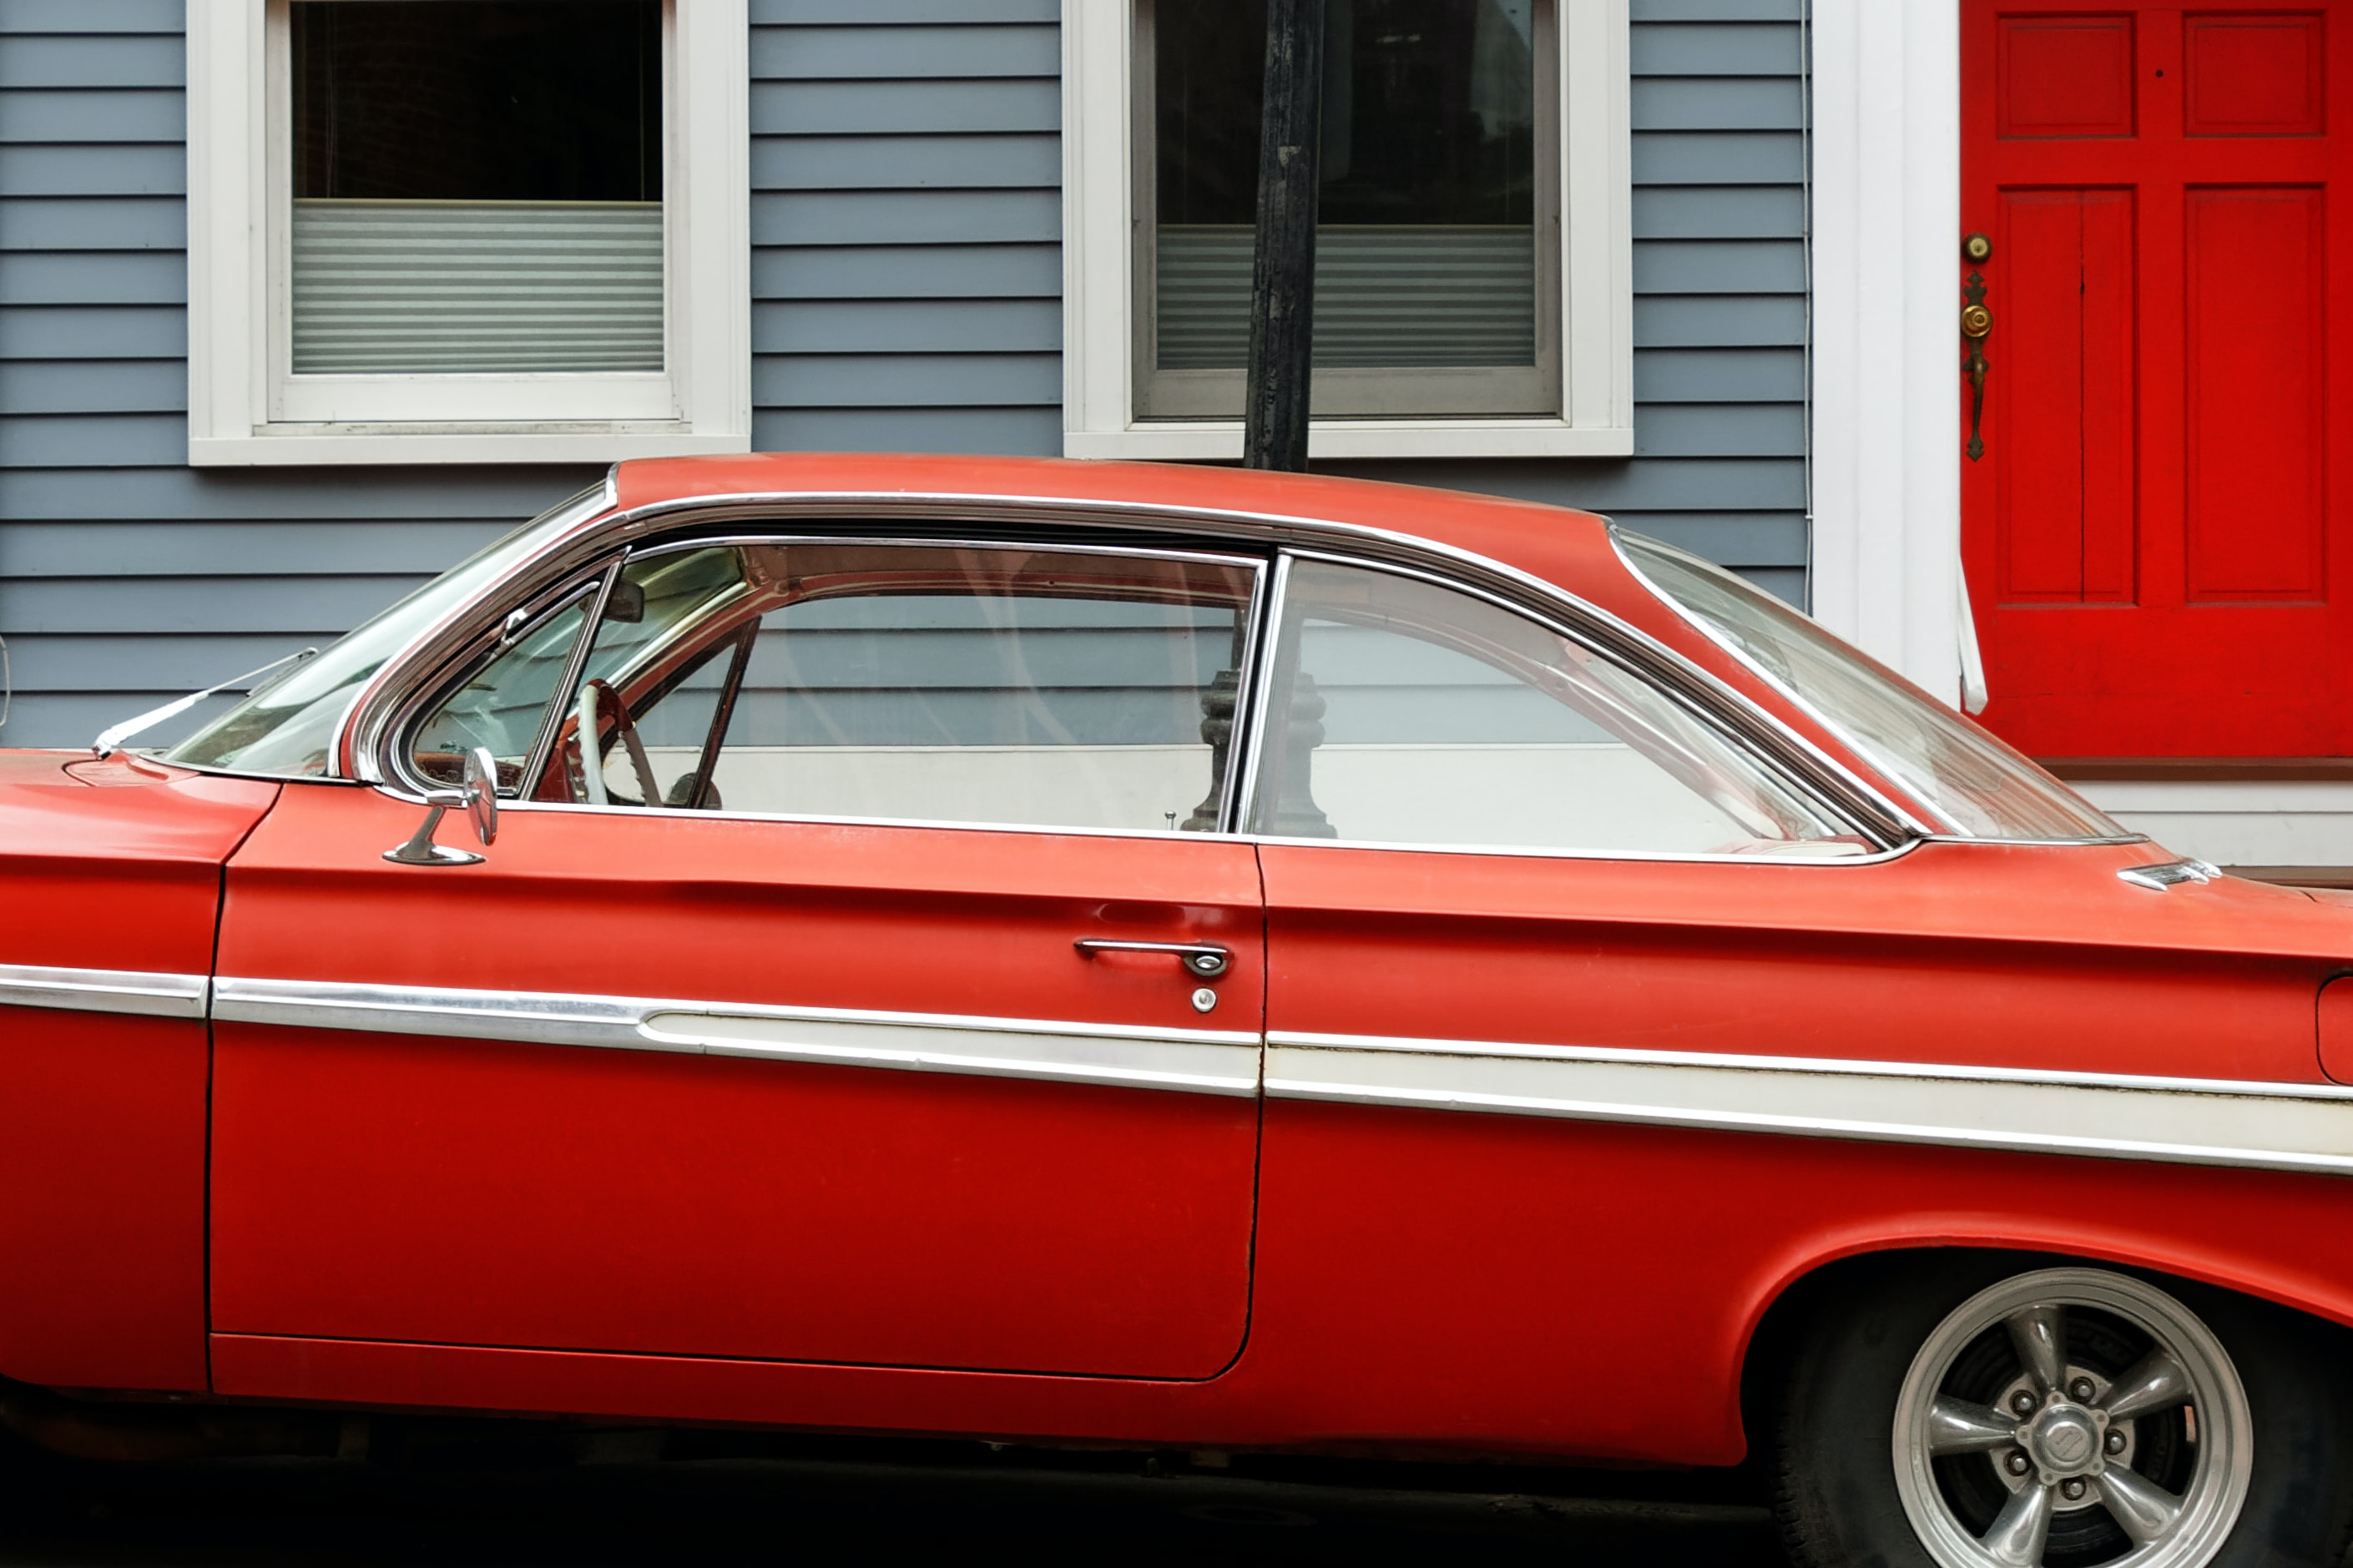 classic red coupe parks beside gray and white wooden house